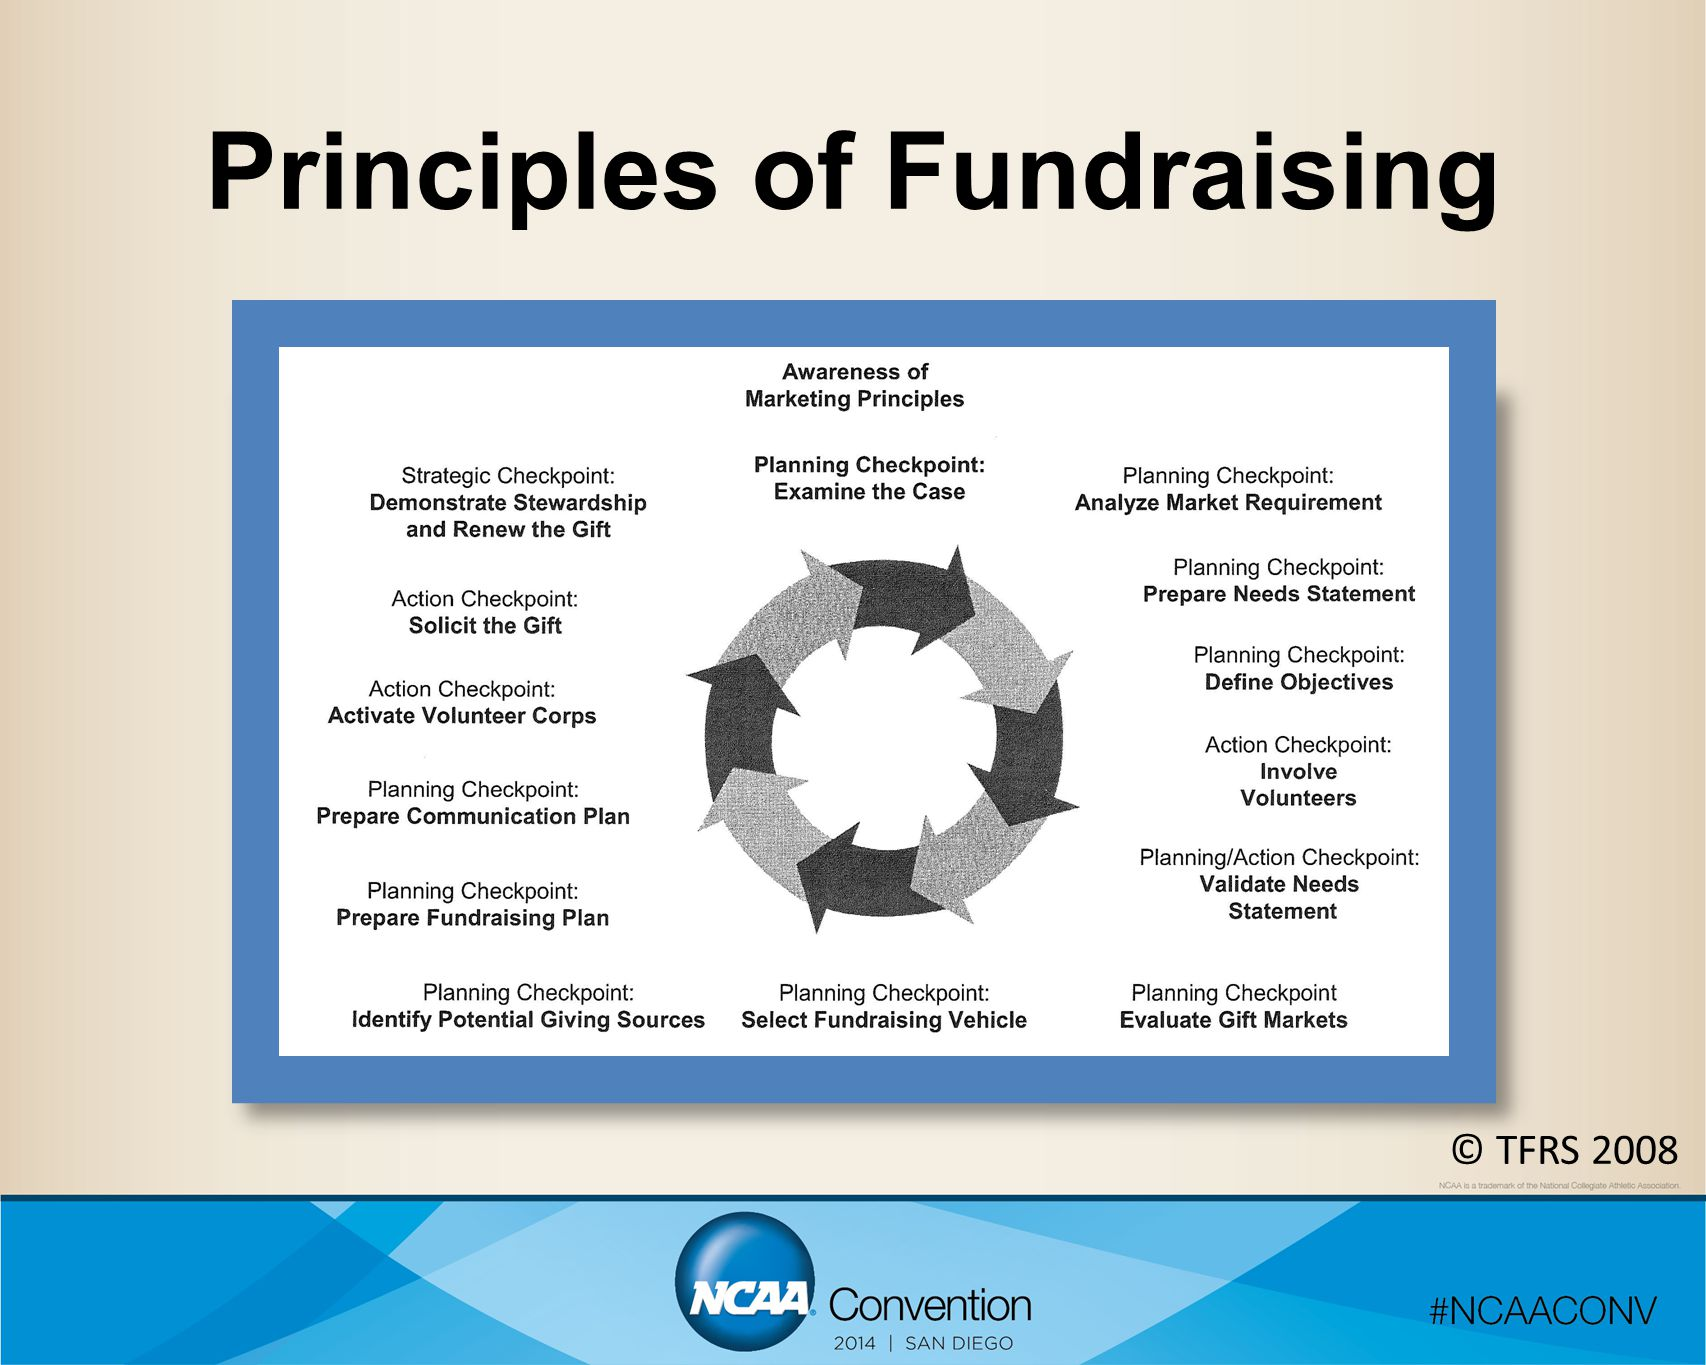 Principles of Fundraising © TFRS 2008